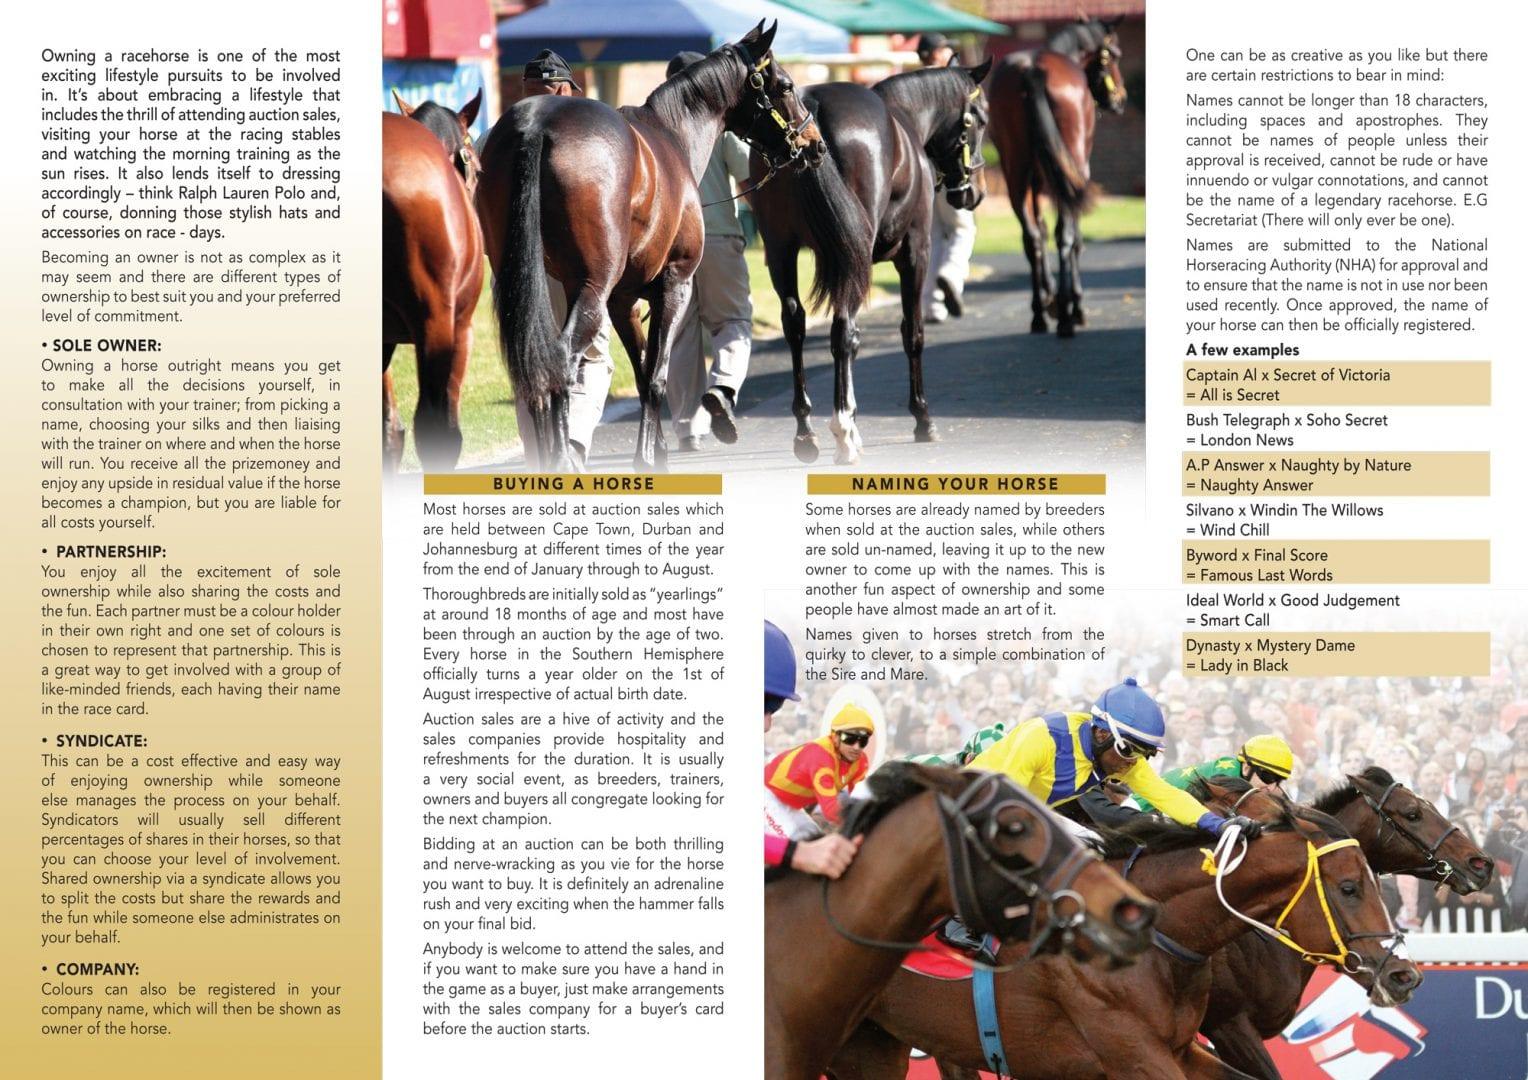 Owning a Thoroughbred Racehorse in South Africa